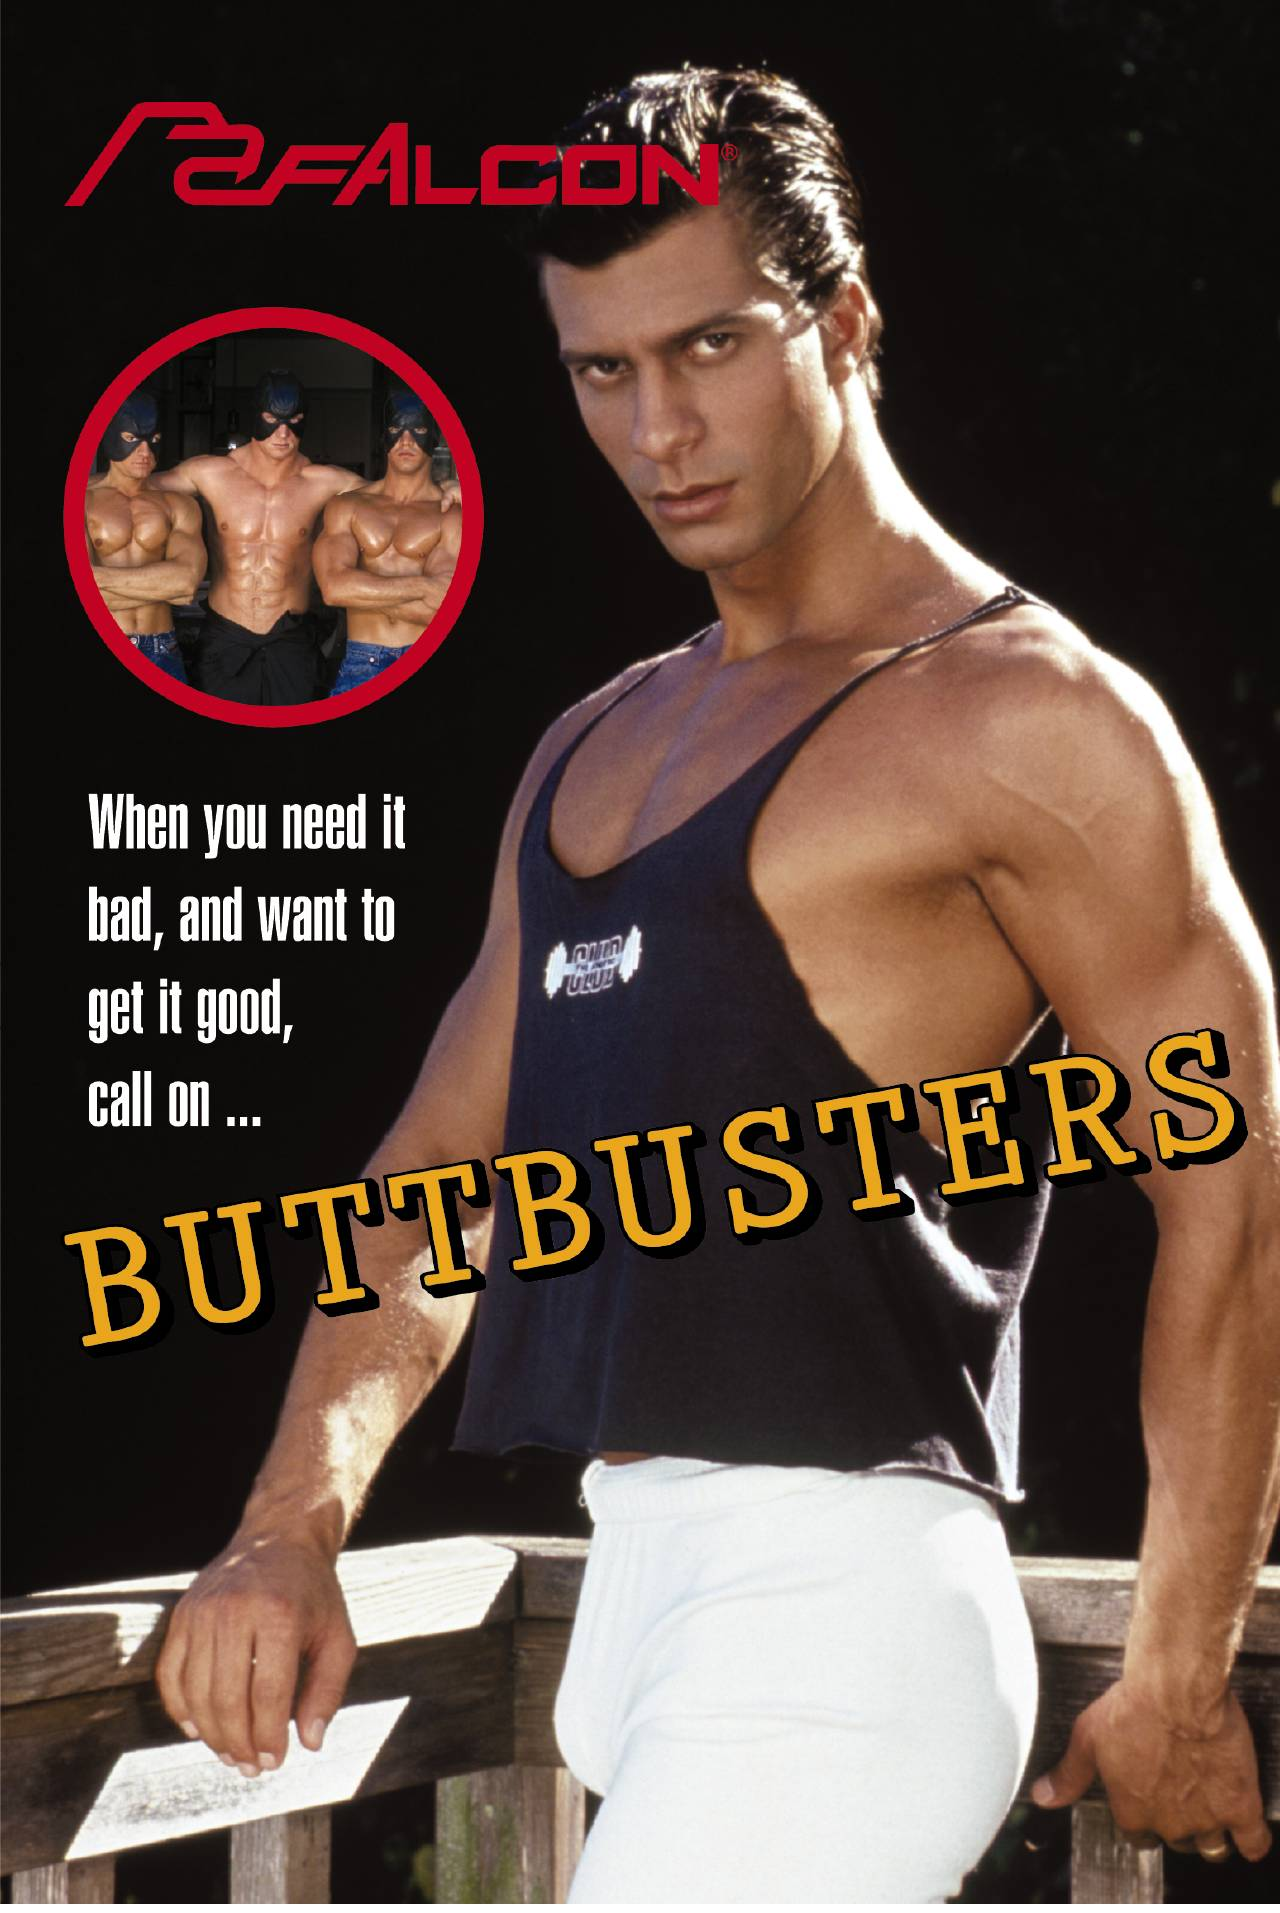 from Bryan gay butt busters